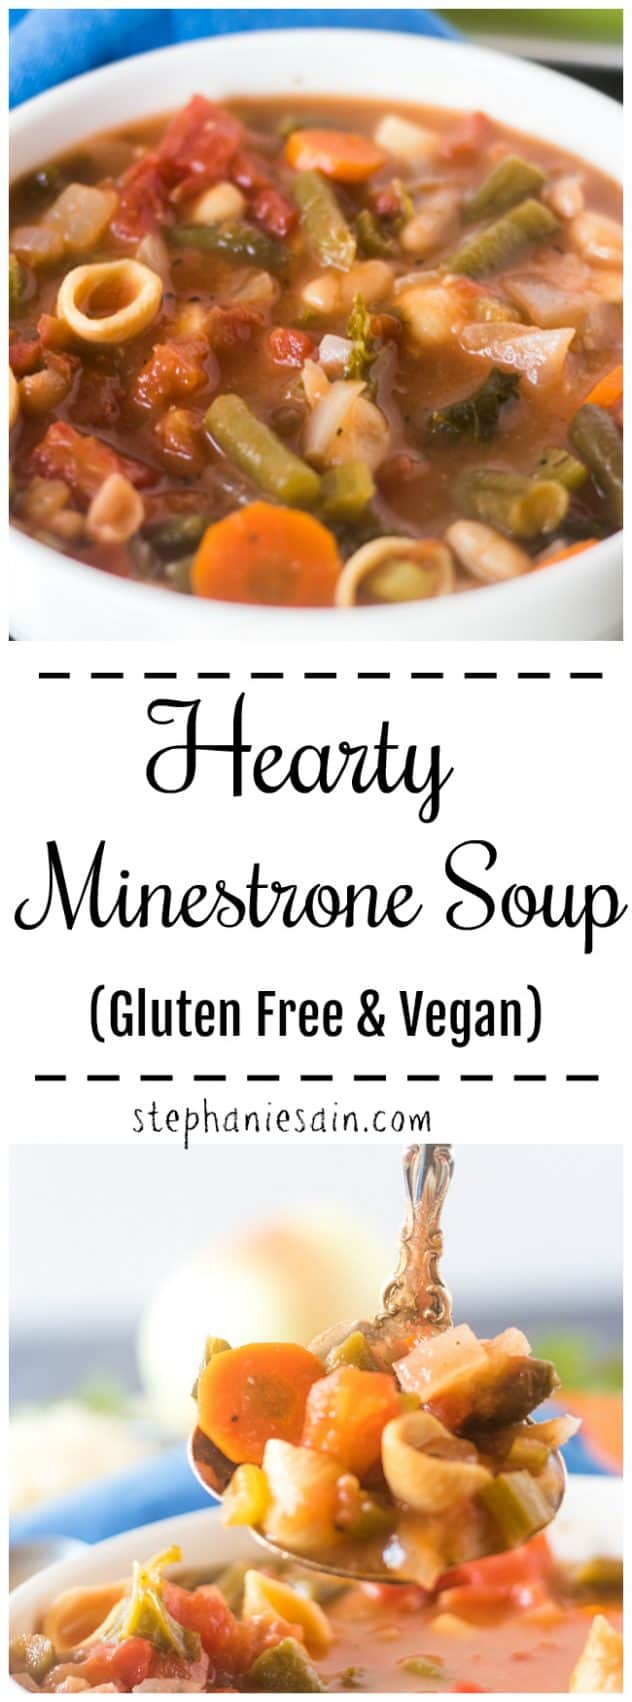 This Minestrone Soup is hearty, comforting & delicious. Chocked full of tons of healthy veggies, tomatoes, & pasta. Super easy to prepare and great for a comforting weeknight or weekend meal. Gluten Free & Vegan.